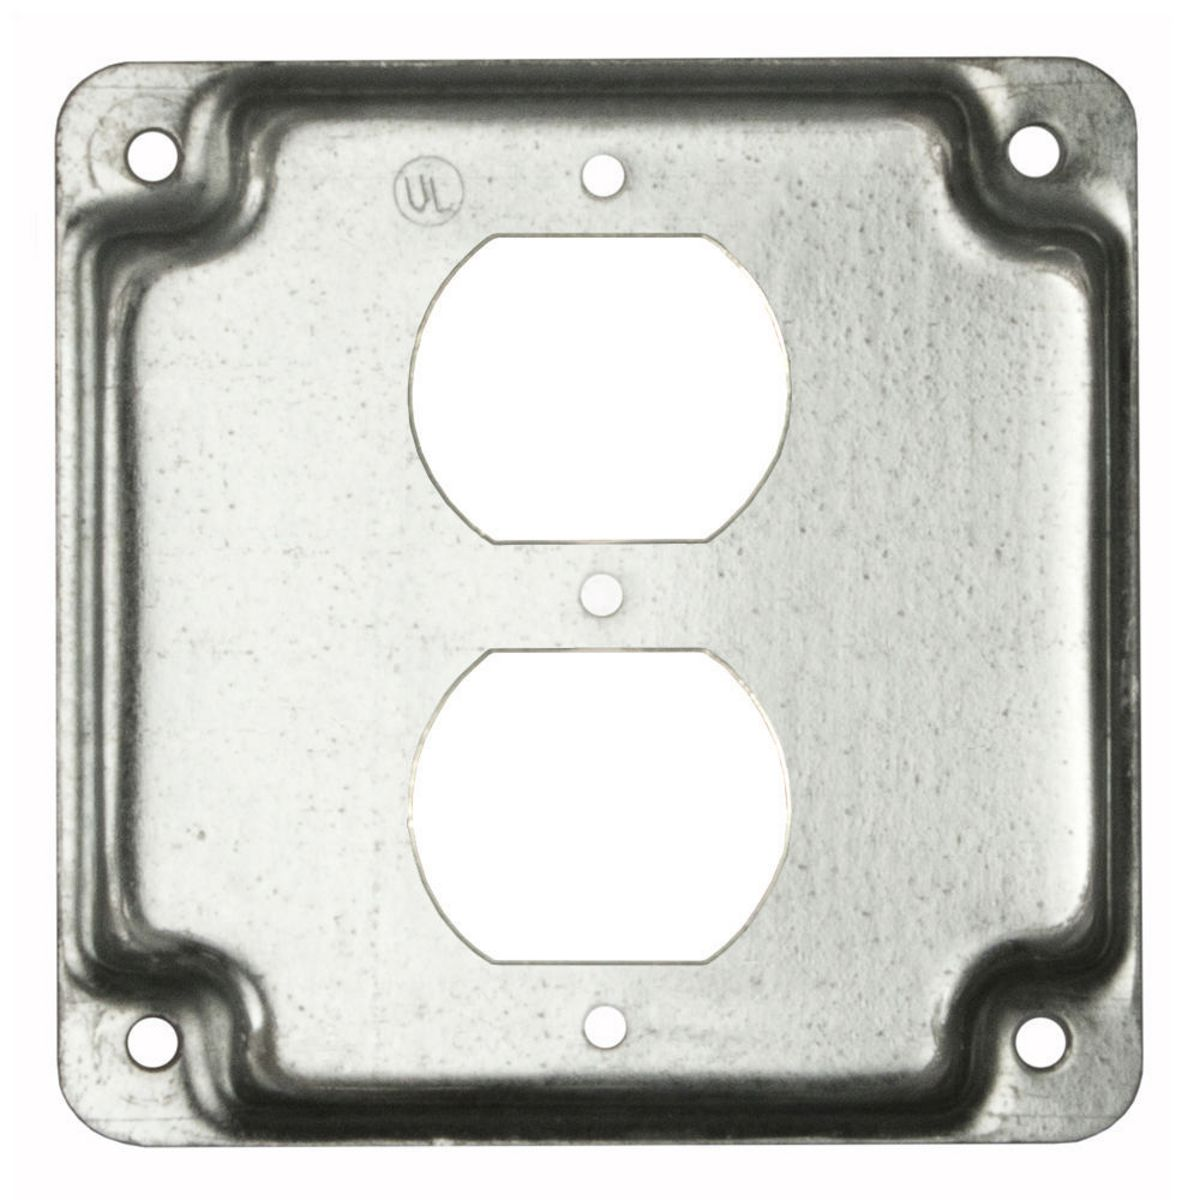 Hubbell Raco 902 1 Duplex Receptacle 4-Inch Square Exposed Work Steel Cover 10